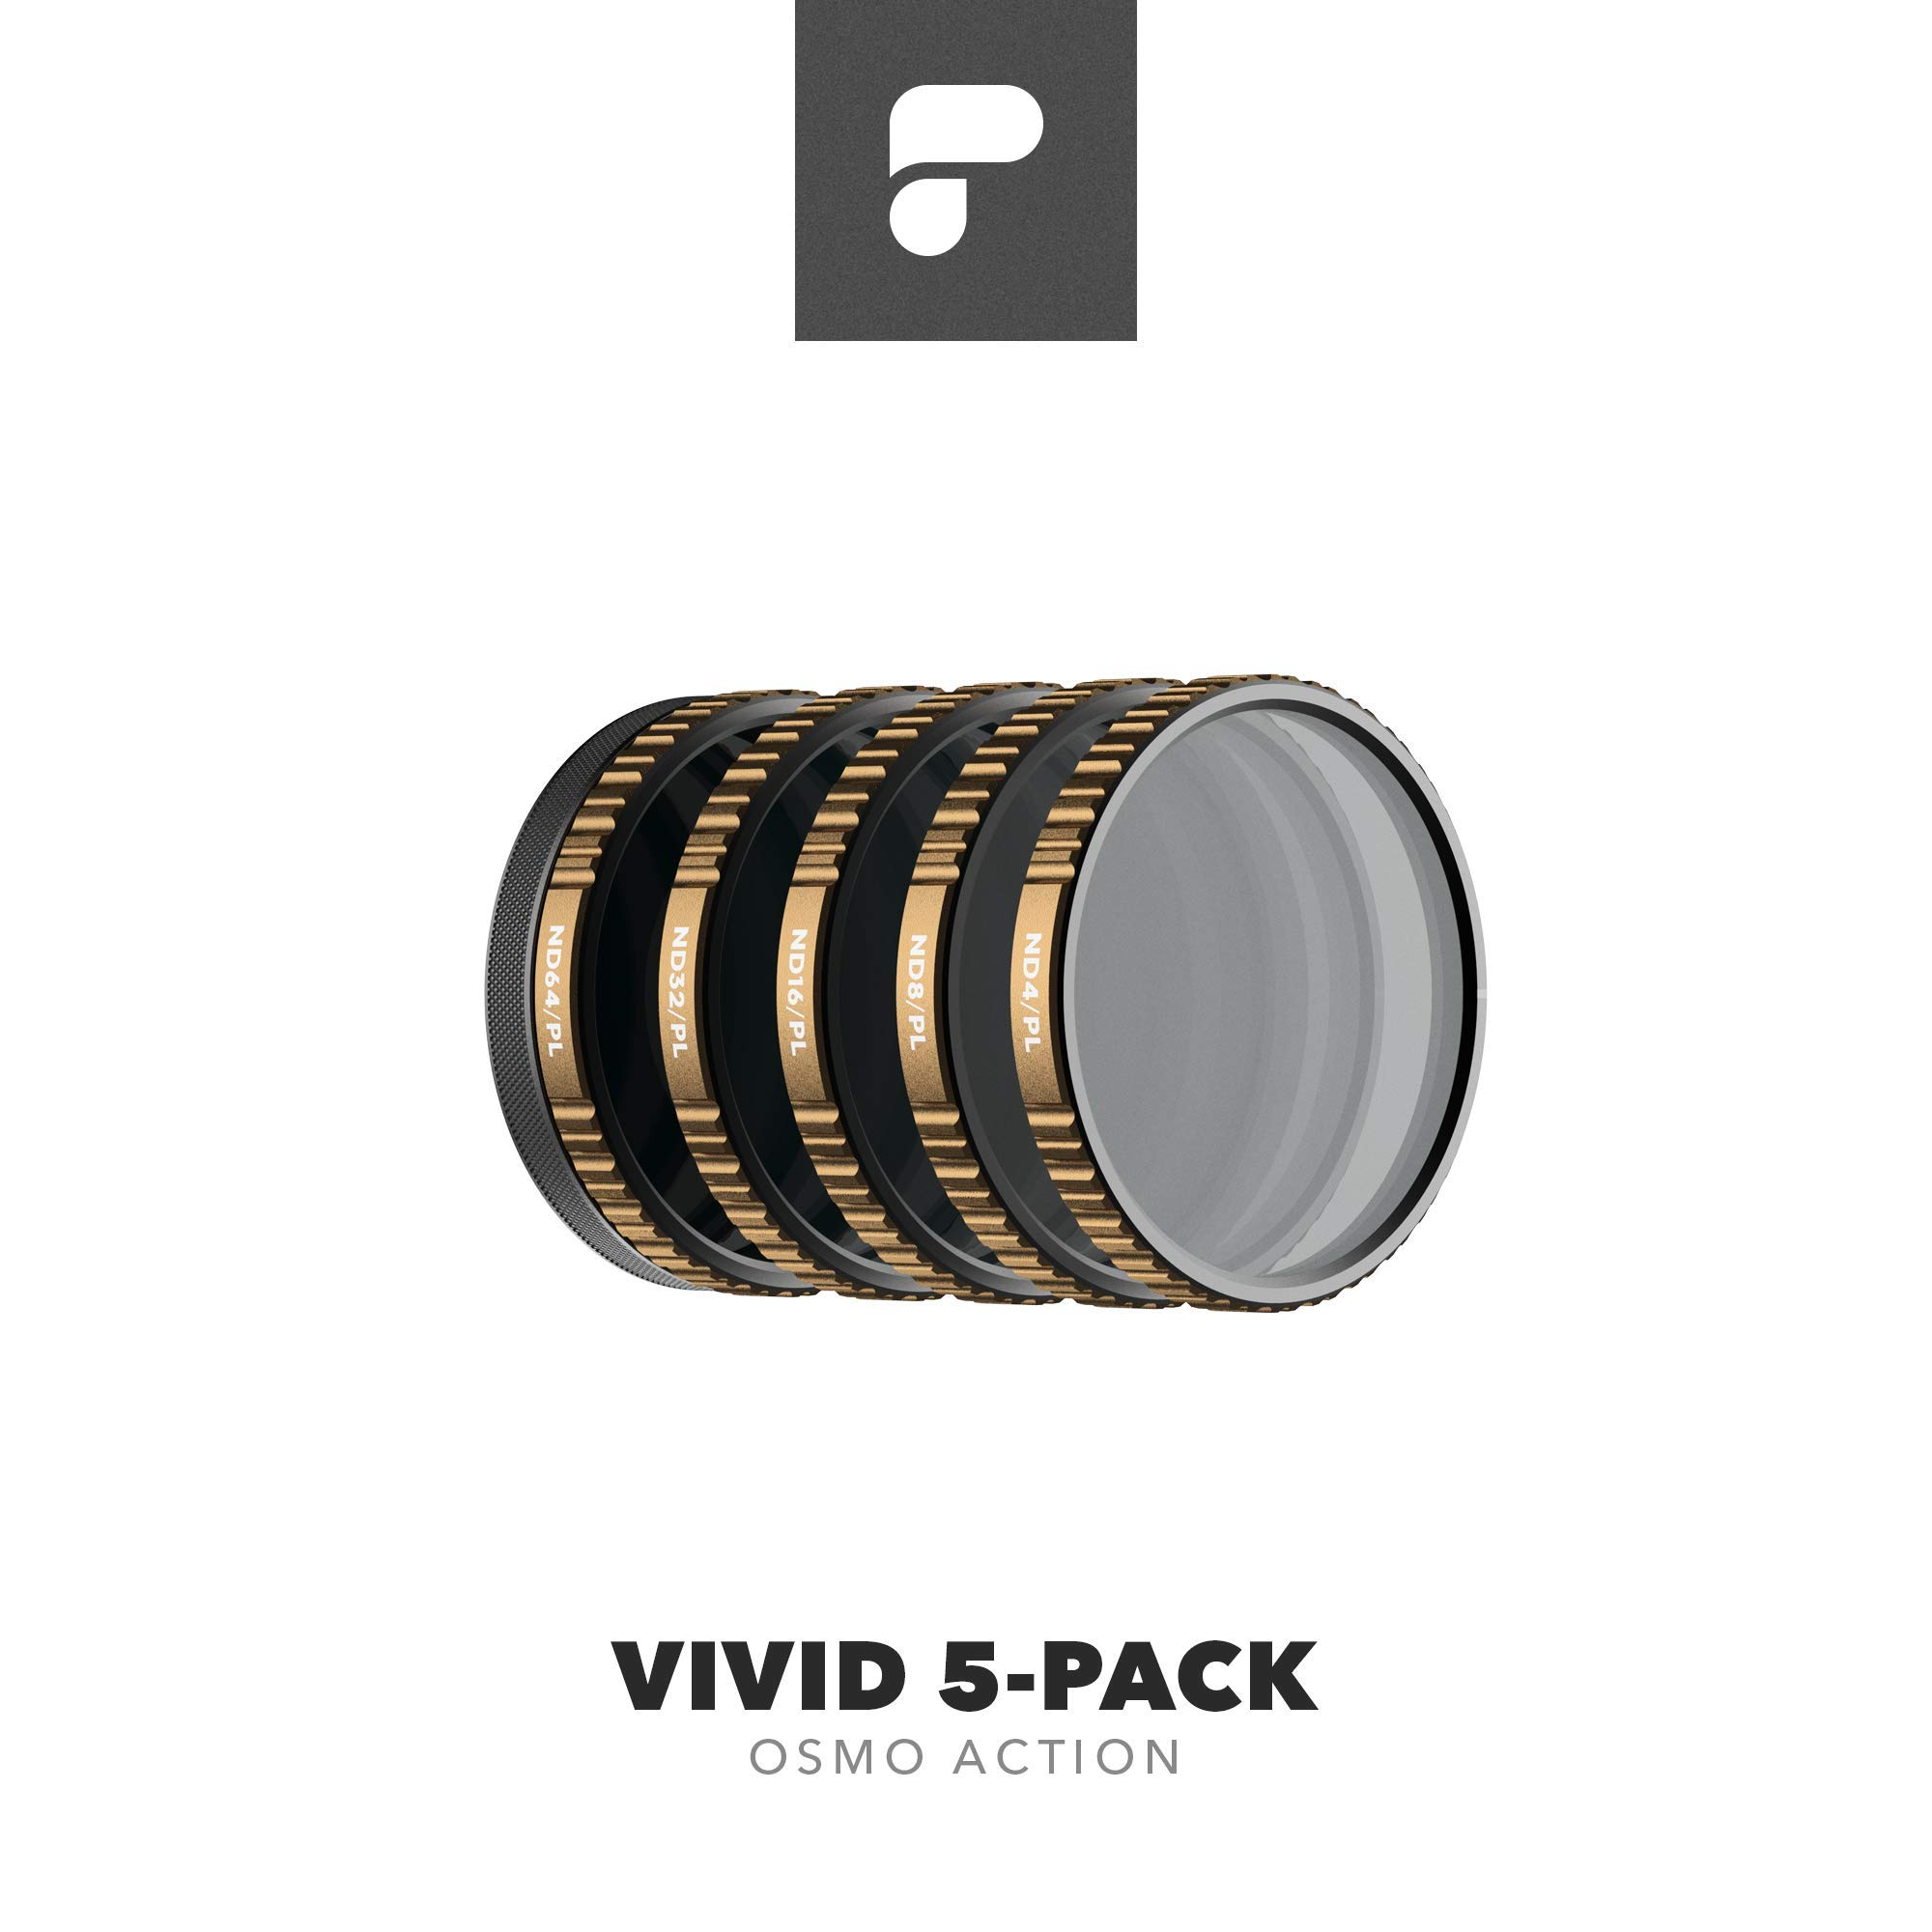 PolarPro Vivid Filter 5-Pack for DJI Osmo Action (Magnetic HotSwap Filter System)